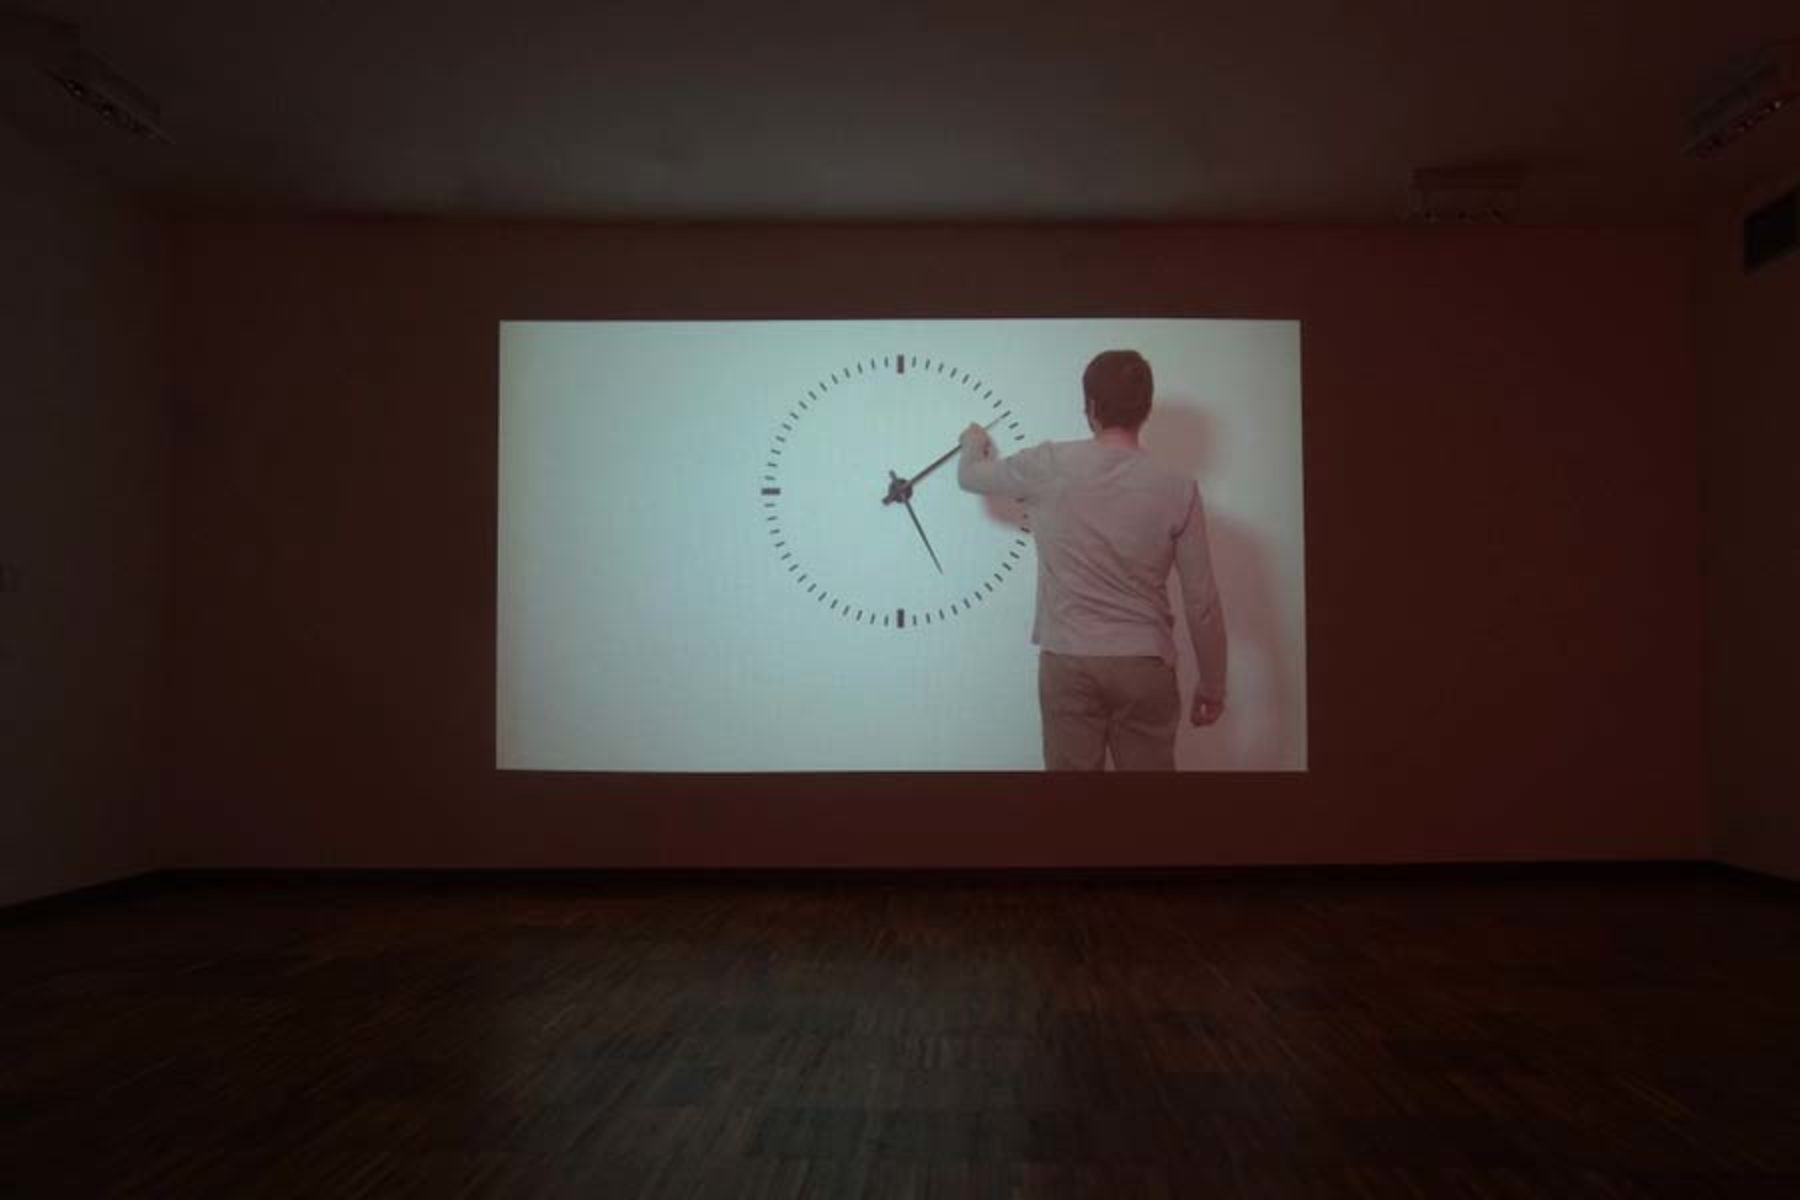 I. Moudov, Performing Time, 2012, video hd, 24 h, 20